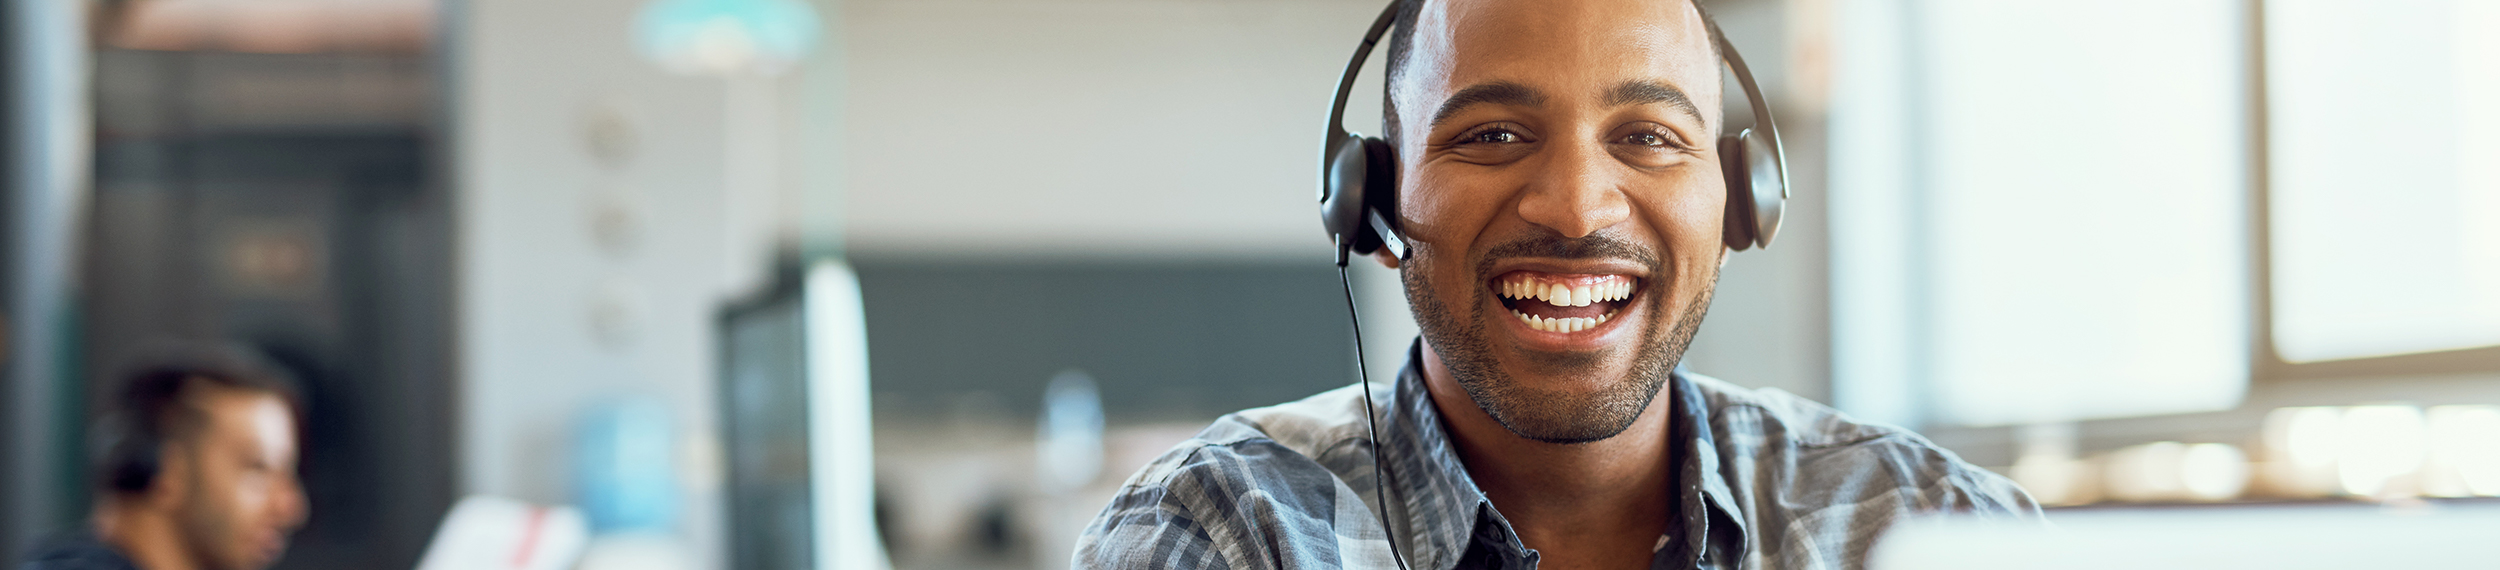 Man with headset smiling at camera in call center